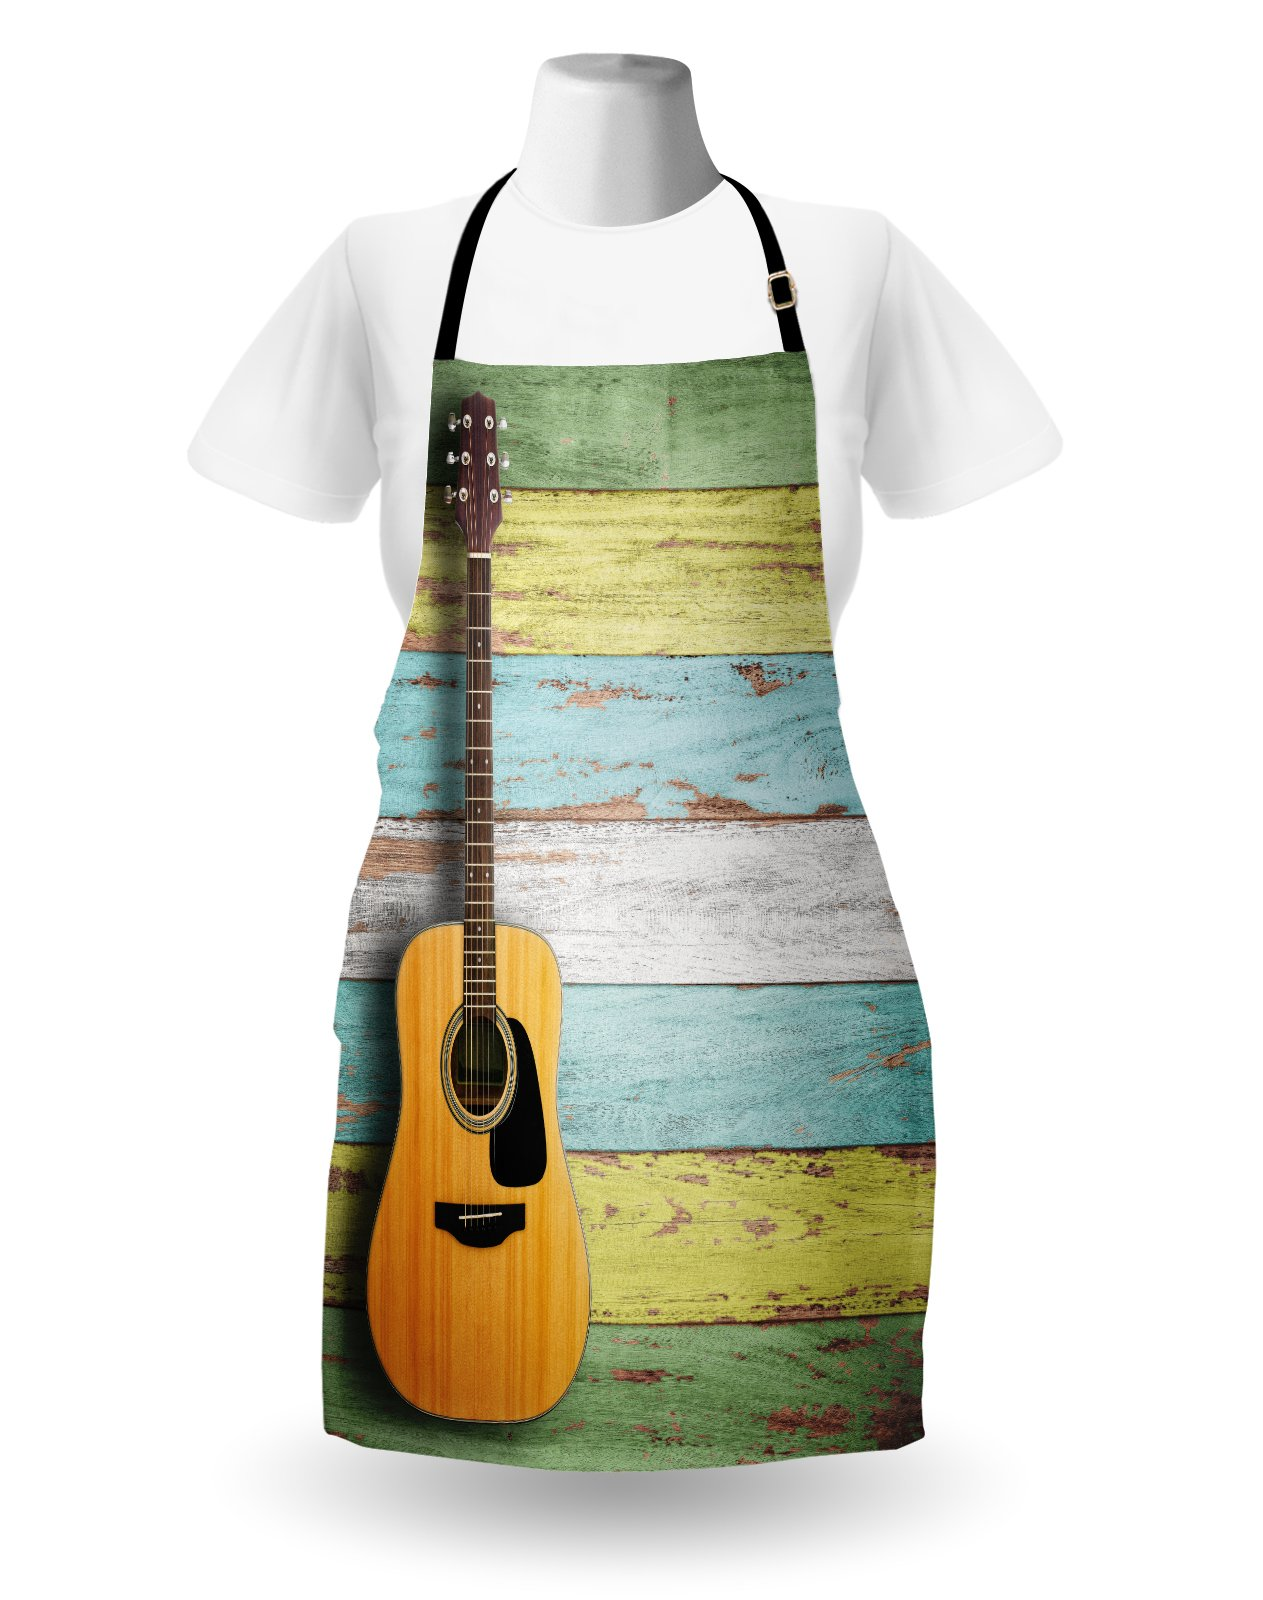 Ambesonne Music Apron, Acoustic Guitar on Colorful Painted Aged Wooden Planks Rustic Country Design Print, Unisex Kitchen Bib Apron with Adjustable Neck for Cooking Baking Gardening, Multicolor by Ambesonne (Image #2)